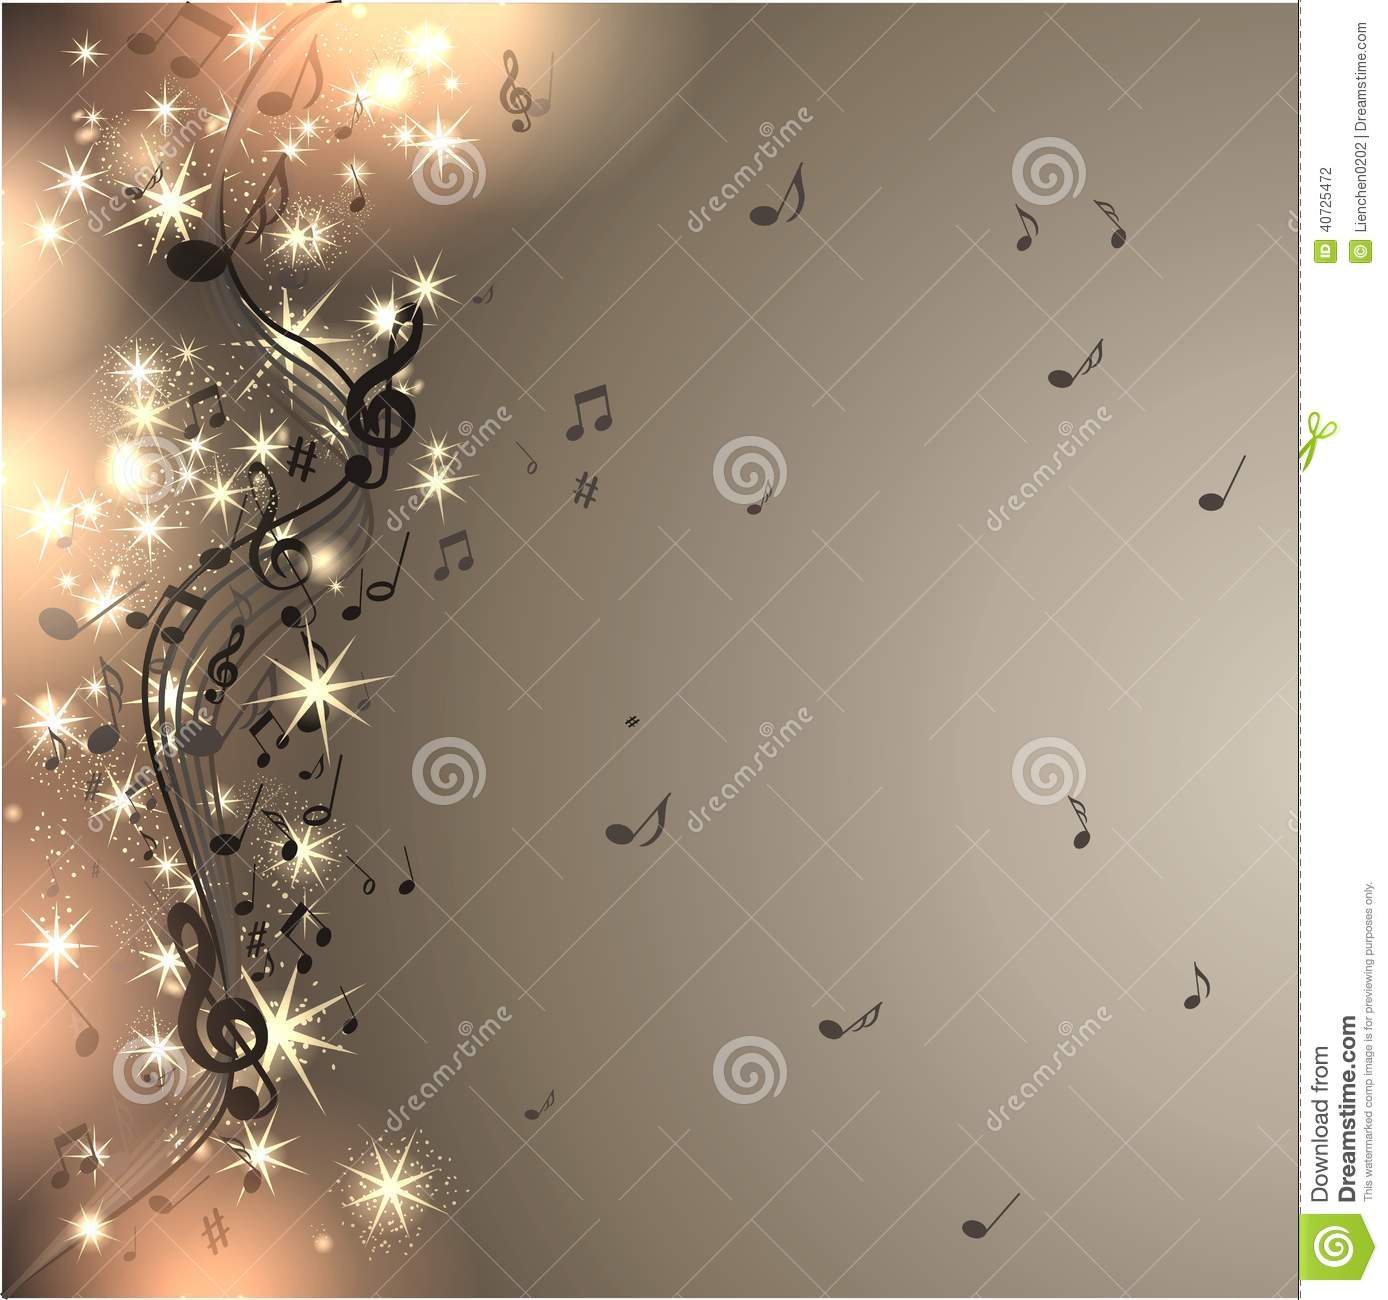 Music: Music Background With Notes Stock Photo